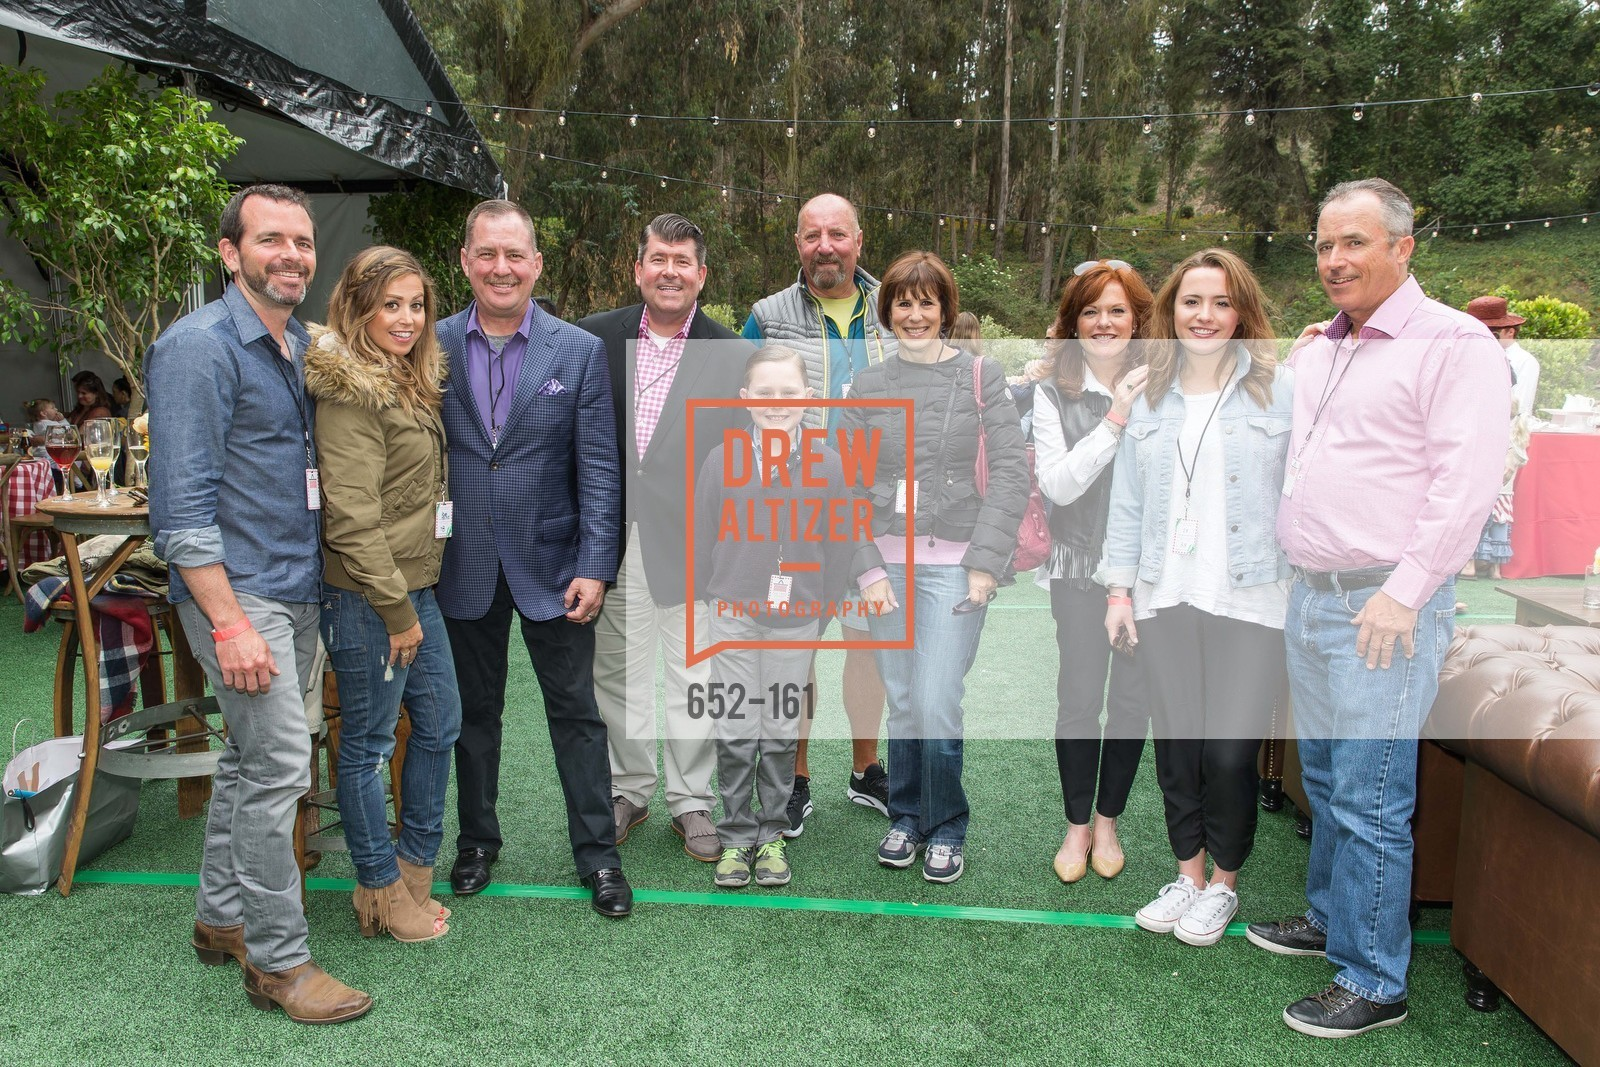 Beau Roy, Shannon Blunden, Mike Genoshe, Alan Morrell, Tim Morrell, John Mino, Terri Mino, Theresa Spirz, Kelsey Spirz, Carl Spirz, THE BIG PICNIC Kicking off  2015 Stern Grove Season, Stern Grove. 2750 19th Avenue, June 14th, 2015,Drew Altizer, Drew Altizer Photography, full-service agency, private events, San Francisco photographer, photographer california